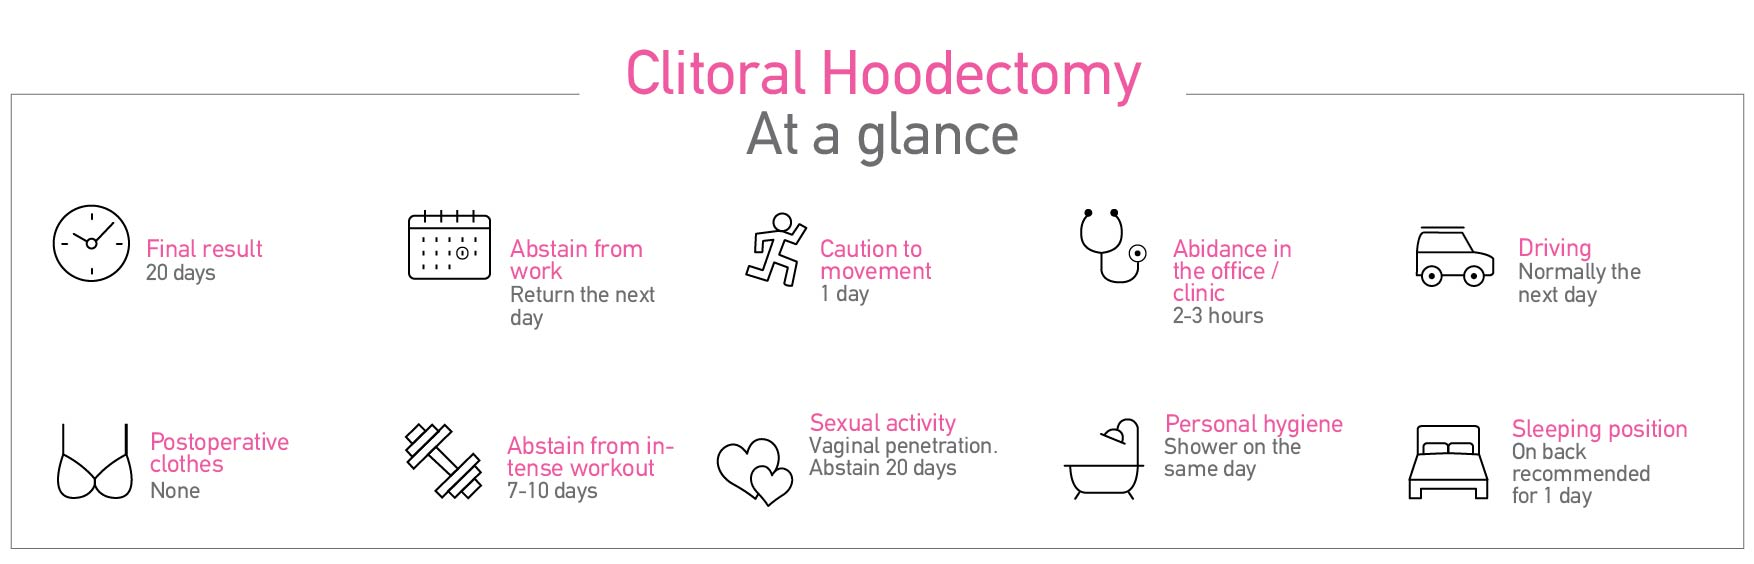 Clitoral Hoodectomy